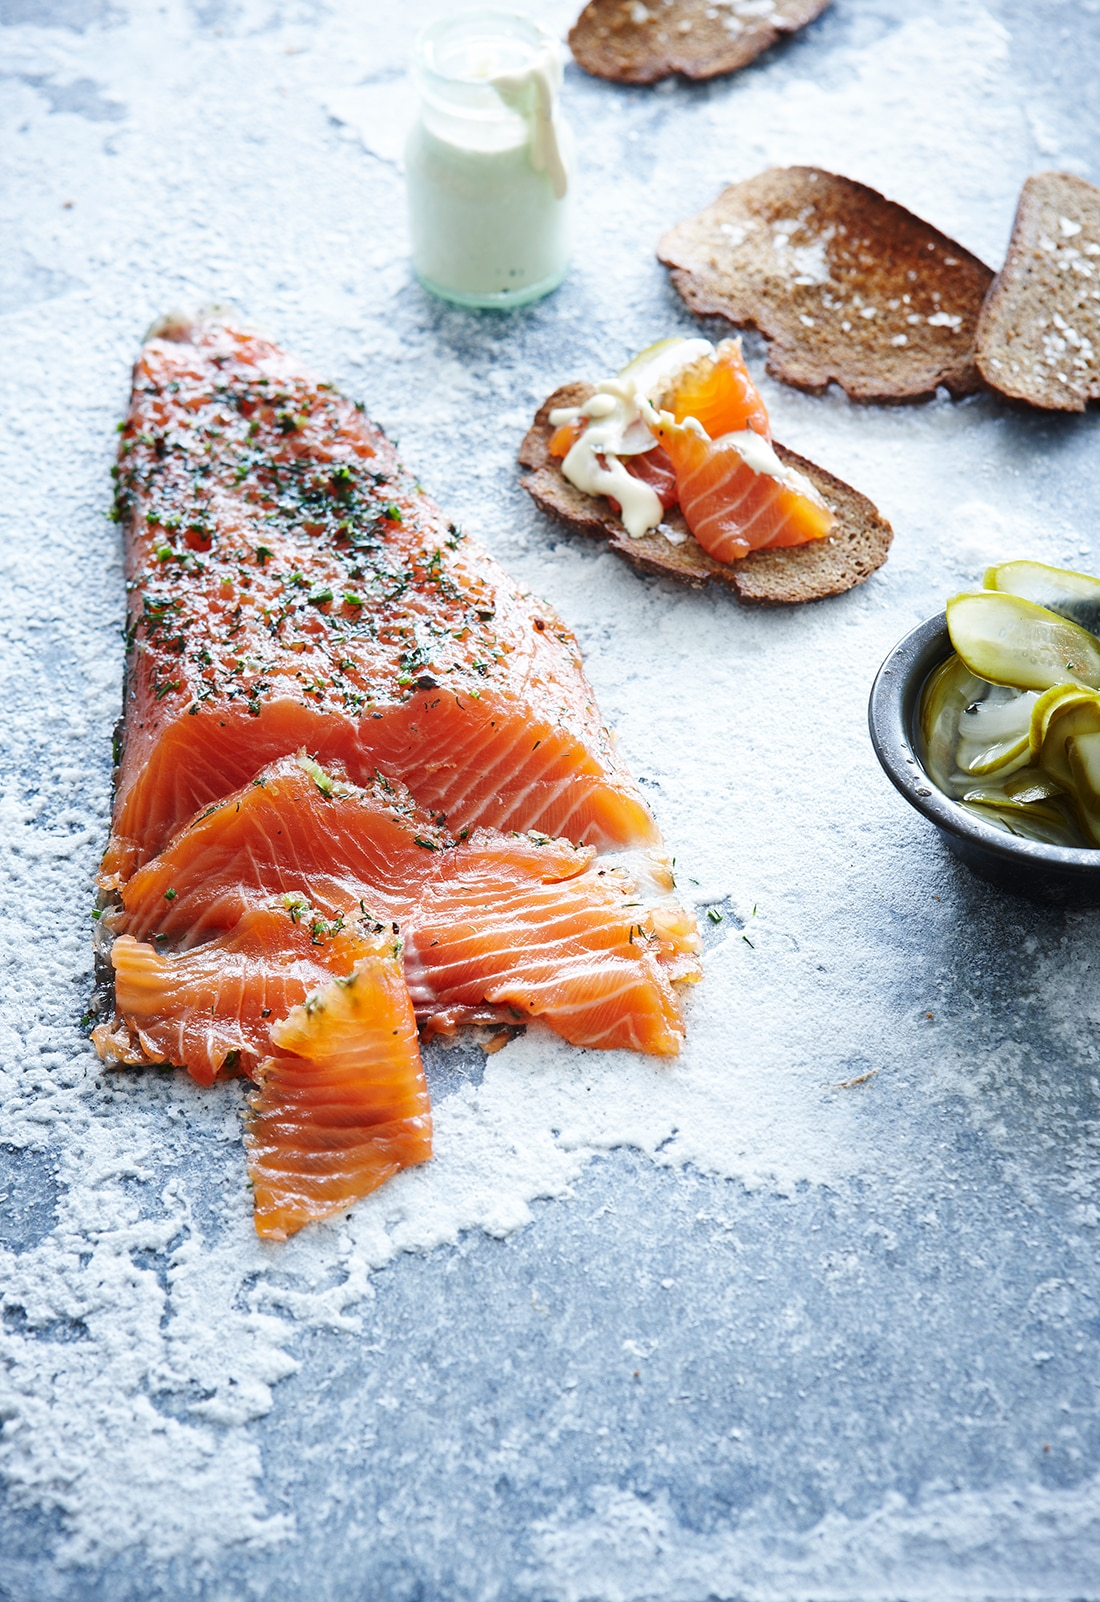 Salmon Gravlax With Dijon Cr & 232me Fra & 238che Dressing And